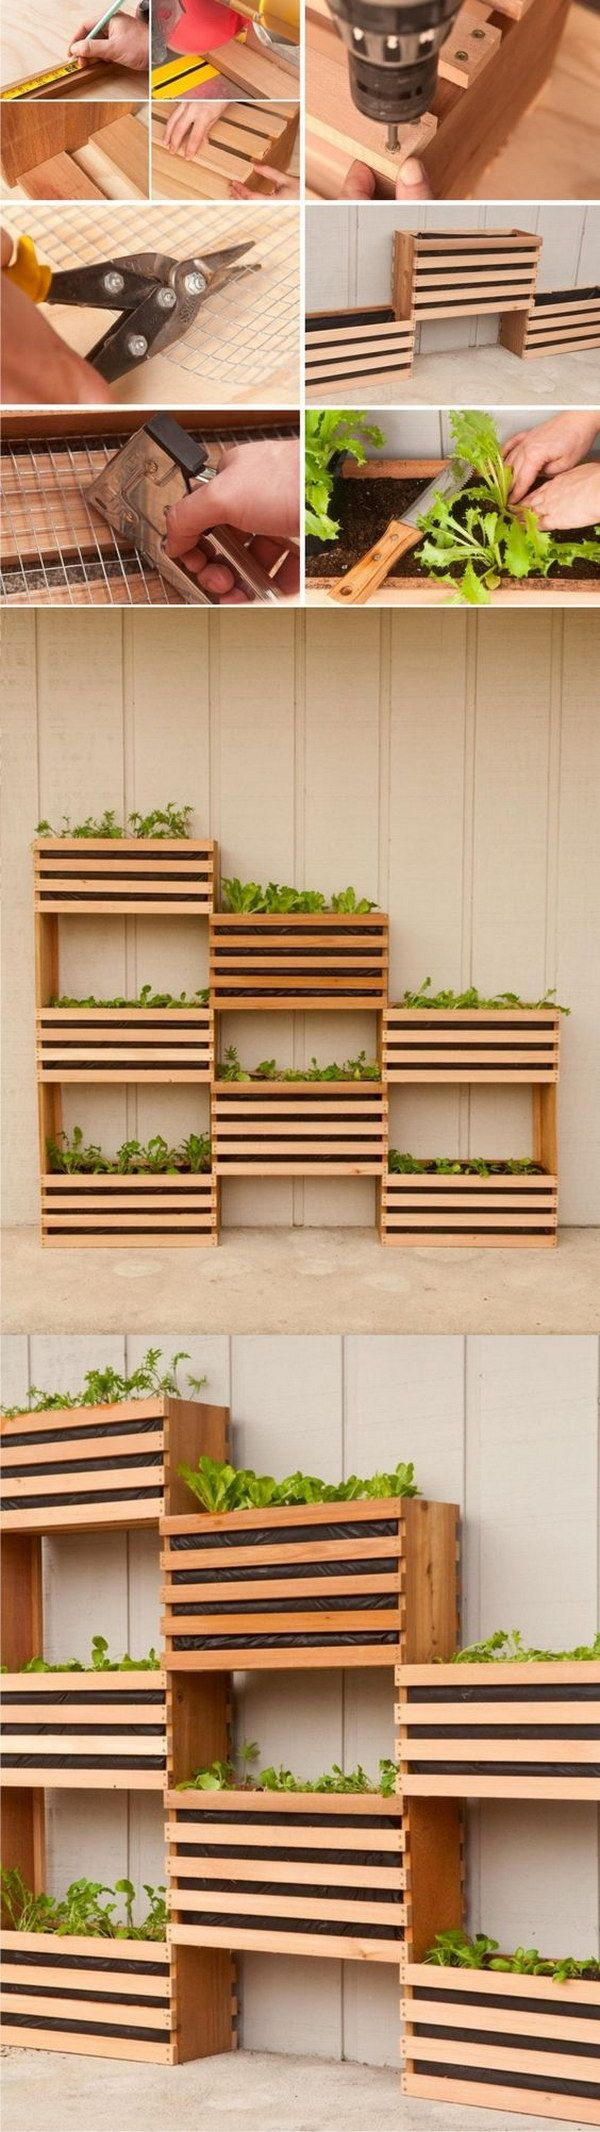 Photo of 30+ cool vertical garden ideas for indoors and outdoors – Amz Dego